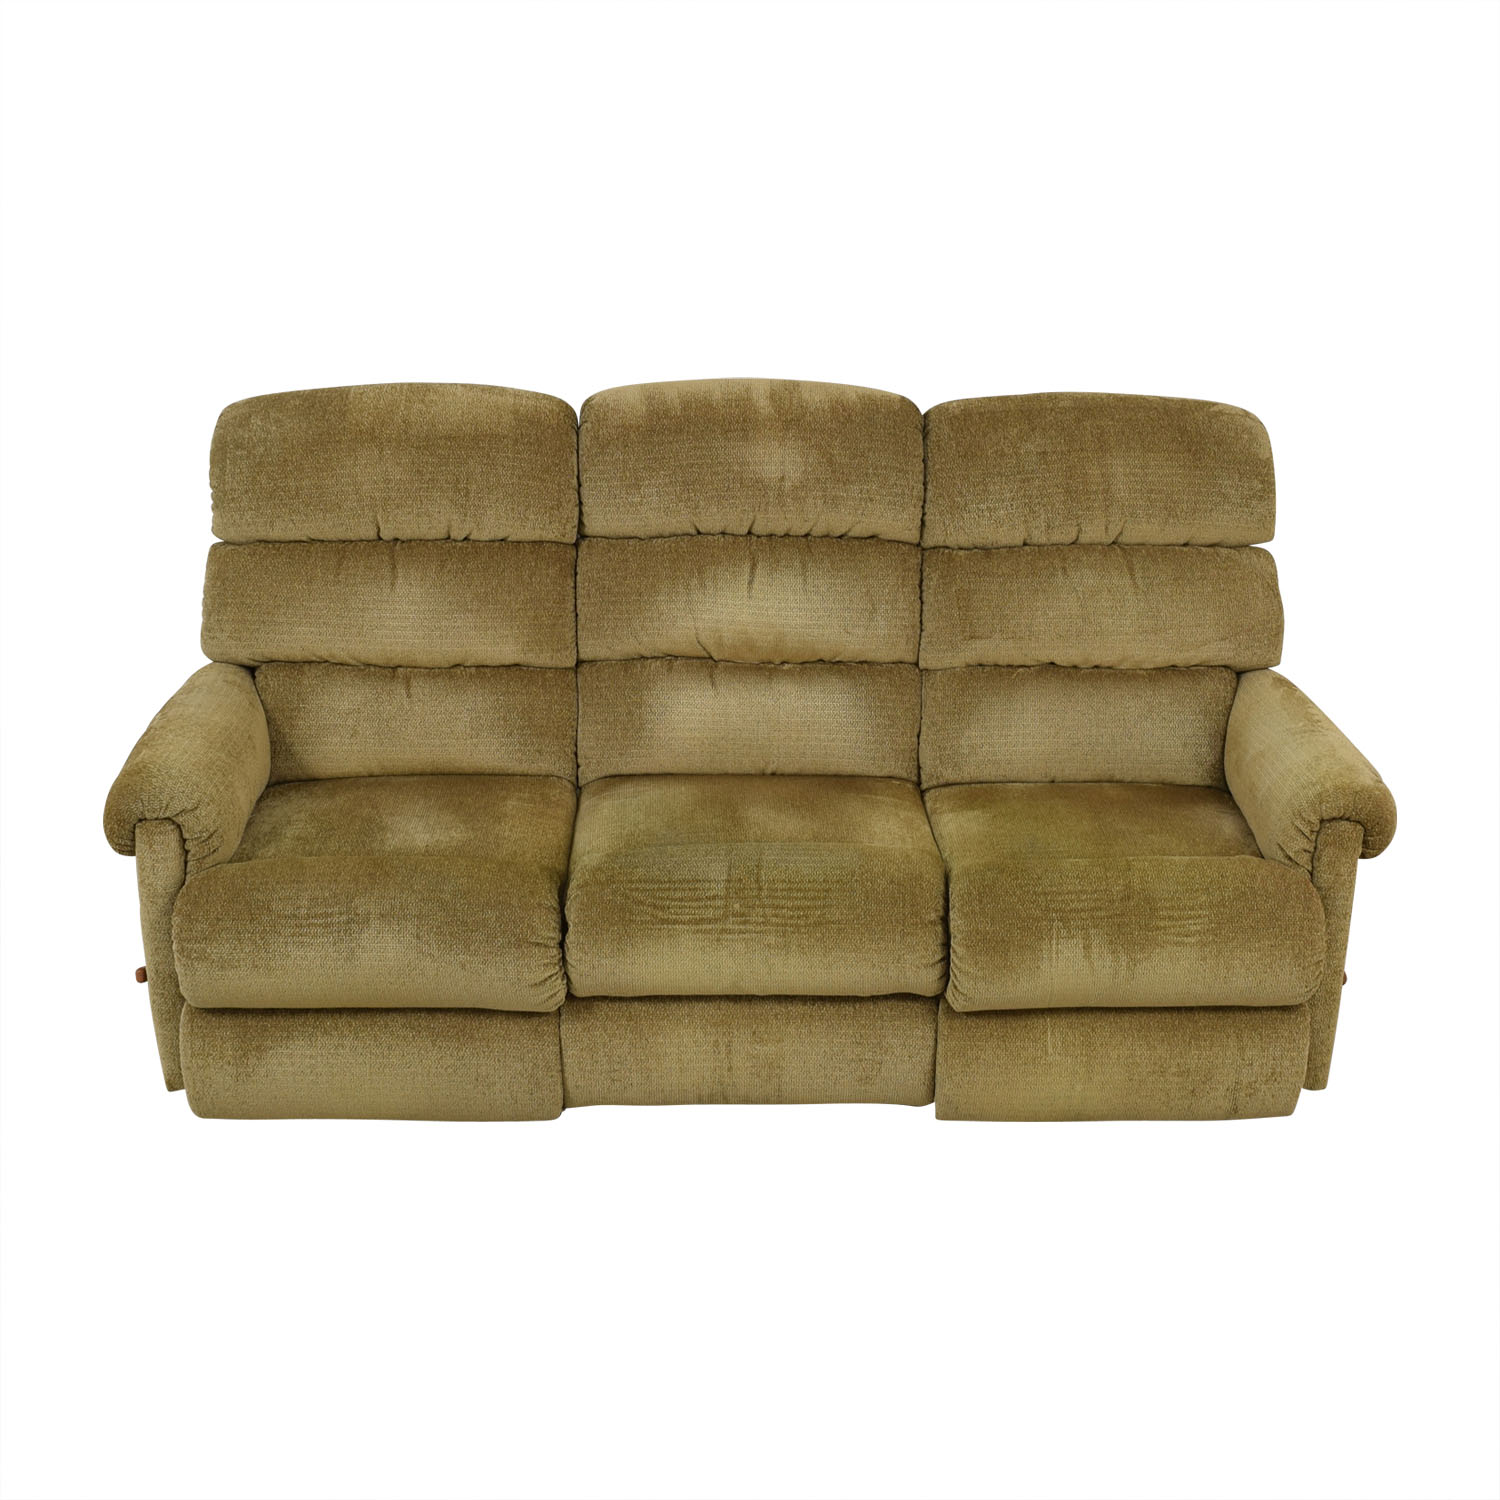 La-Z-Boy La-Z-Boy Tan Reclining Three-Cushion Sofa second hand